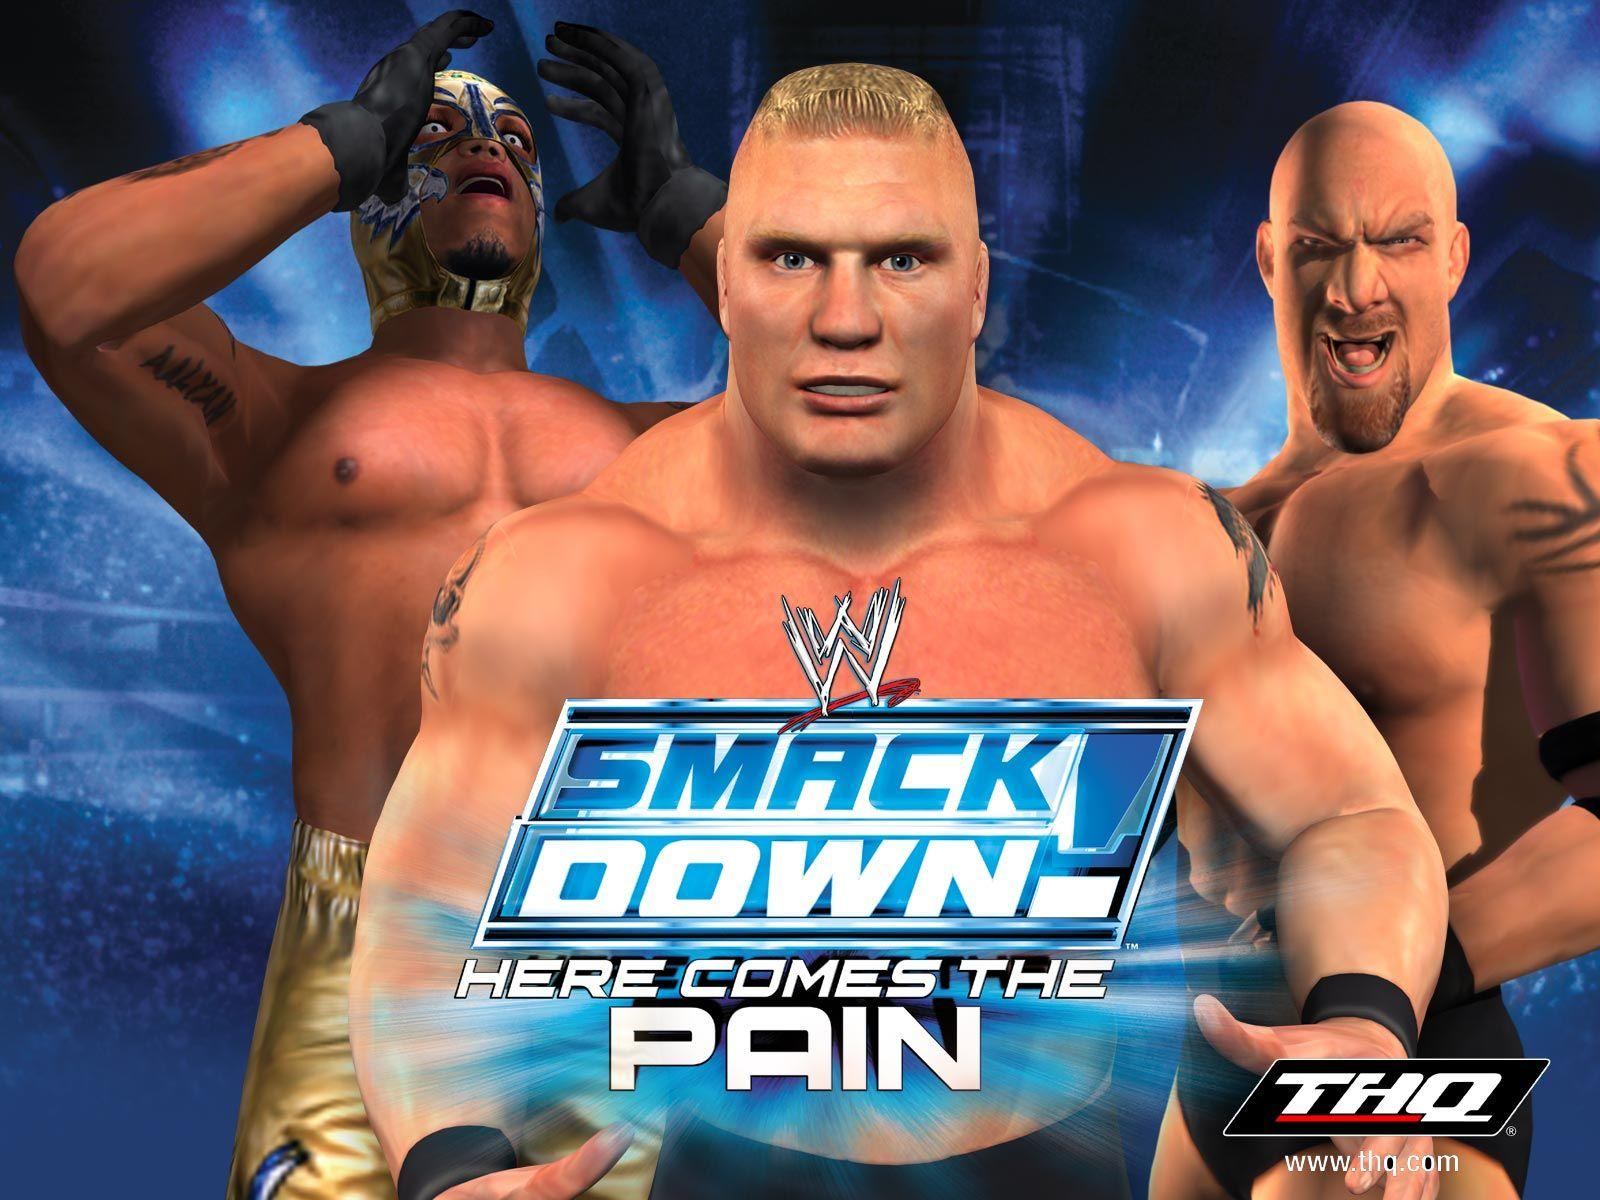 smackdown ps2 games